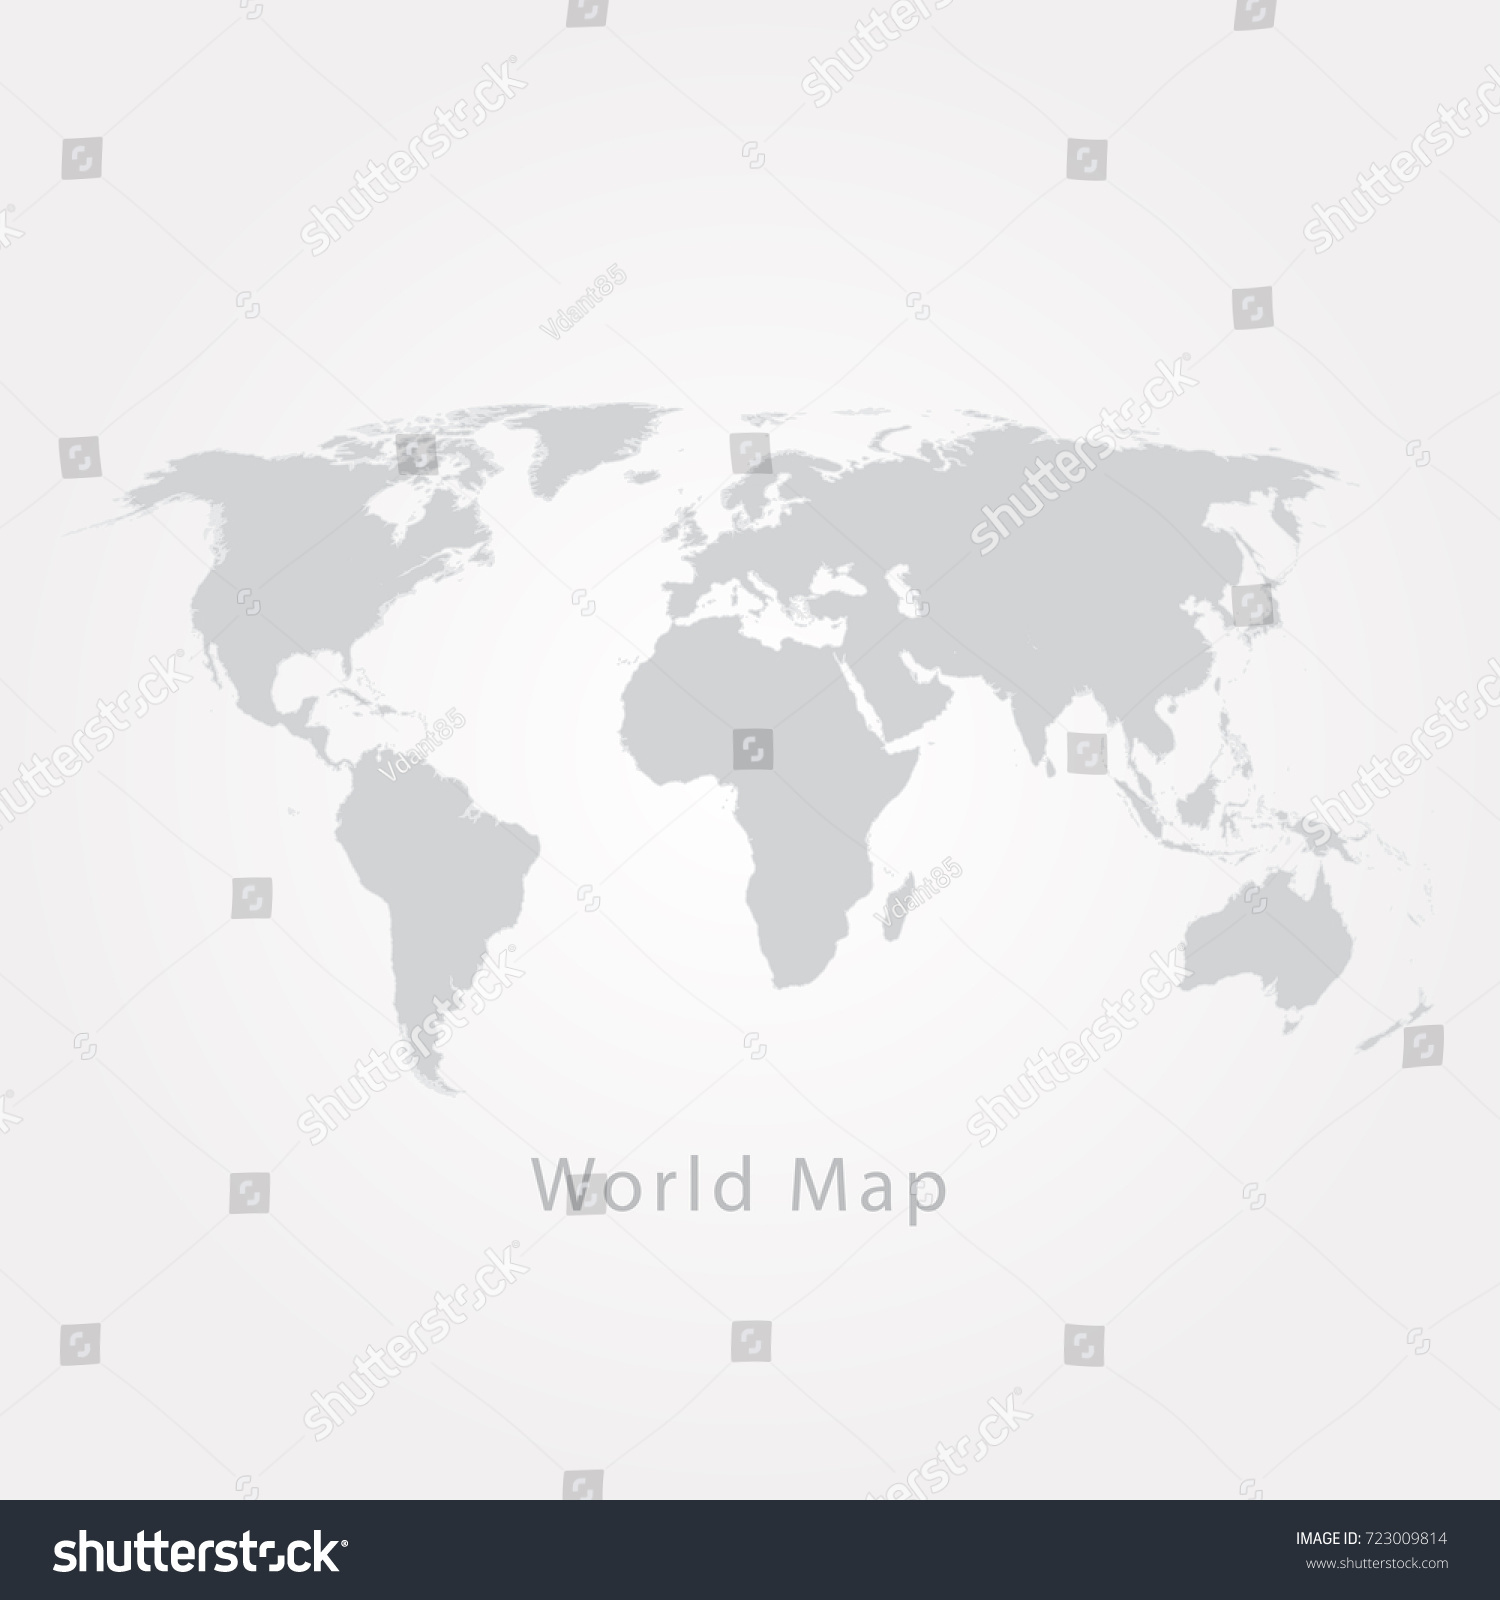 Gray world map vector illustration stock vector 723009814 gray world map vector illustration gumiabroncs Gallery